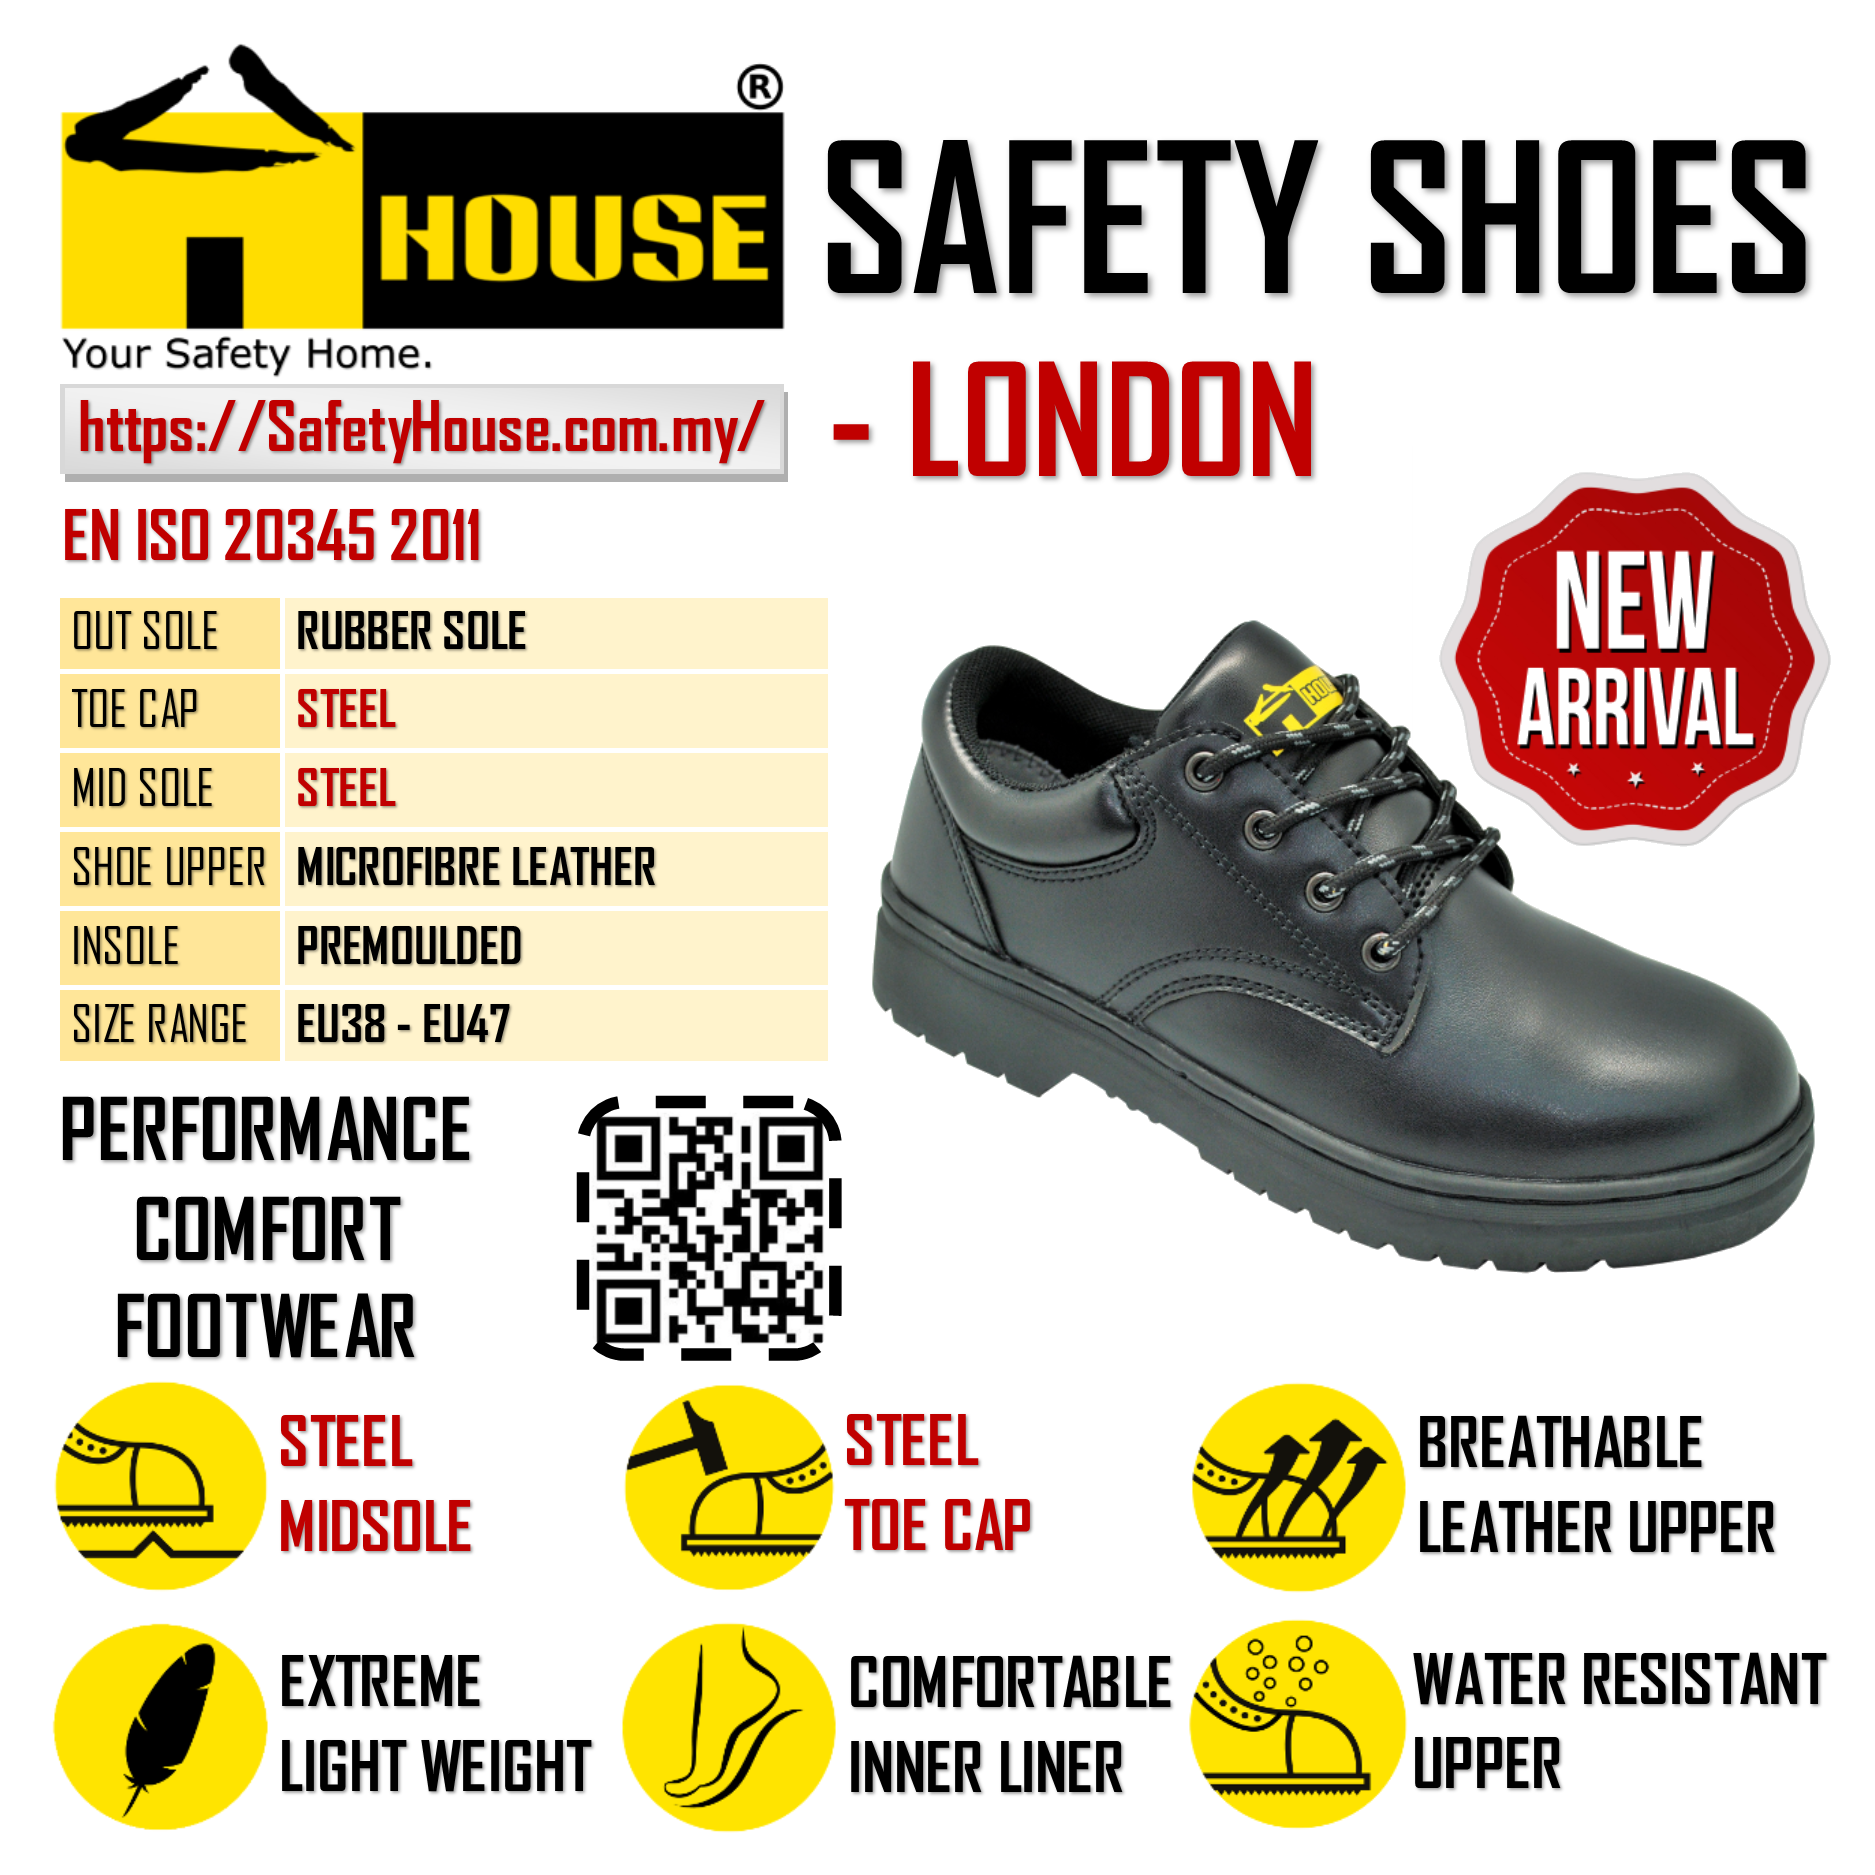 HOUSE LONDON SAFETY SHOES C/W STEEL TOE CAP & STEEL MID SOLE